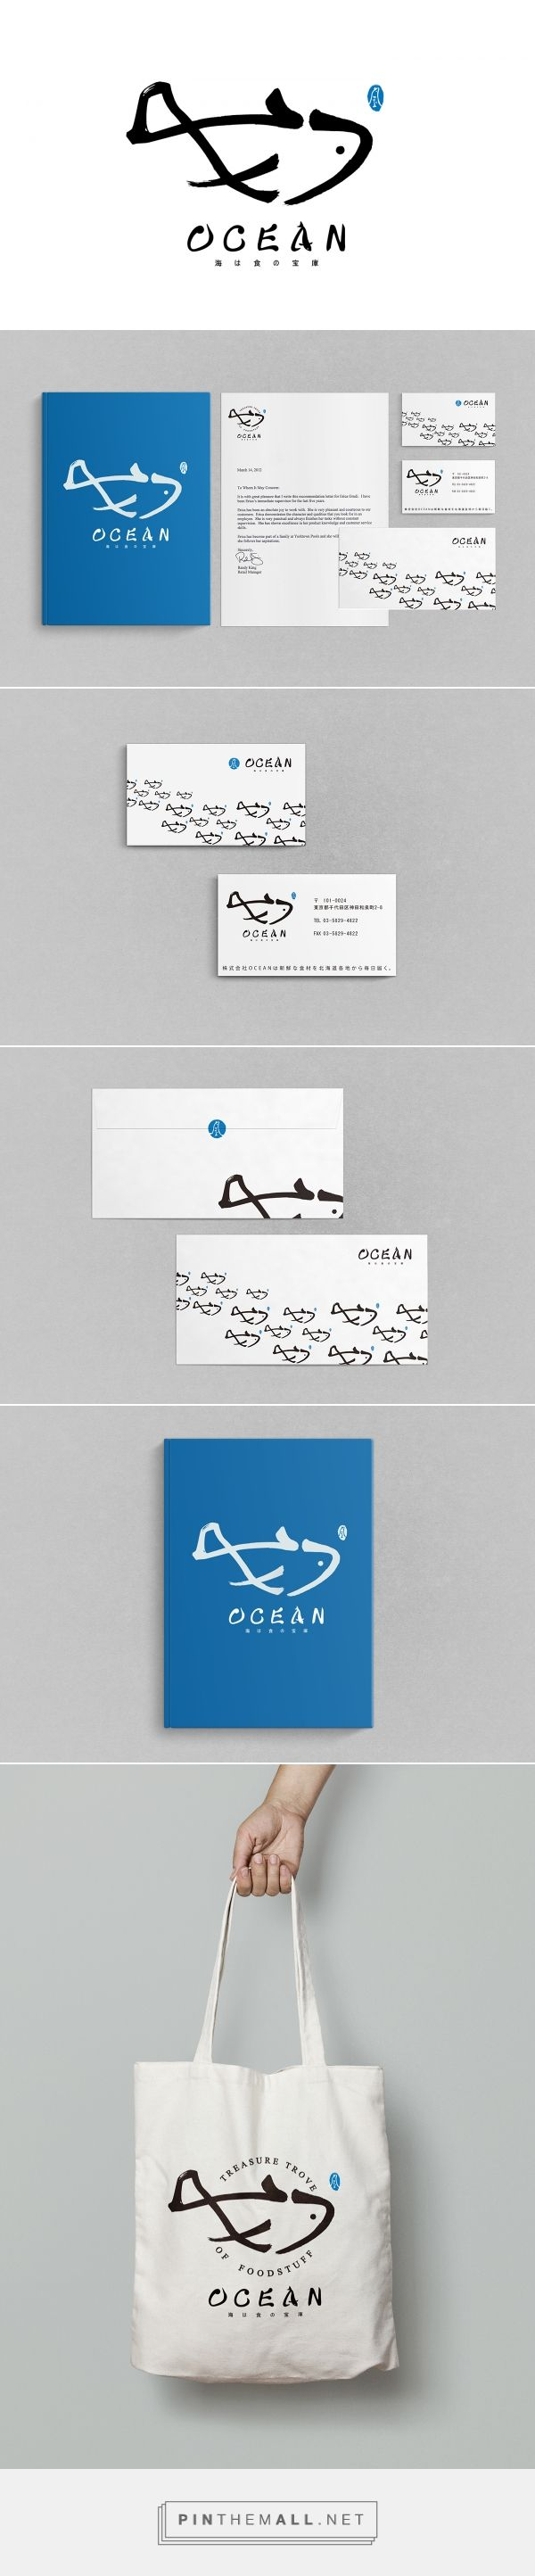 OCEAN Branding on Behance | Fivestar Branding – Design and Branding Agency & Inspiration Gallery